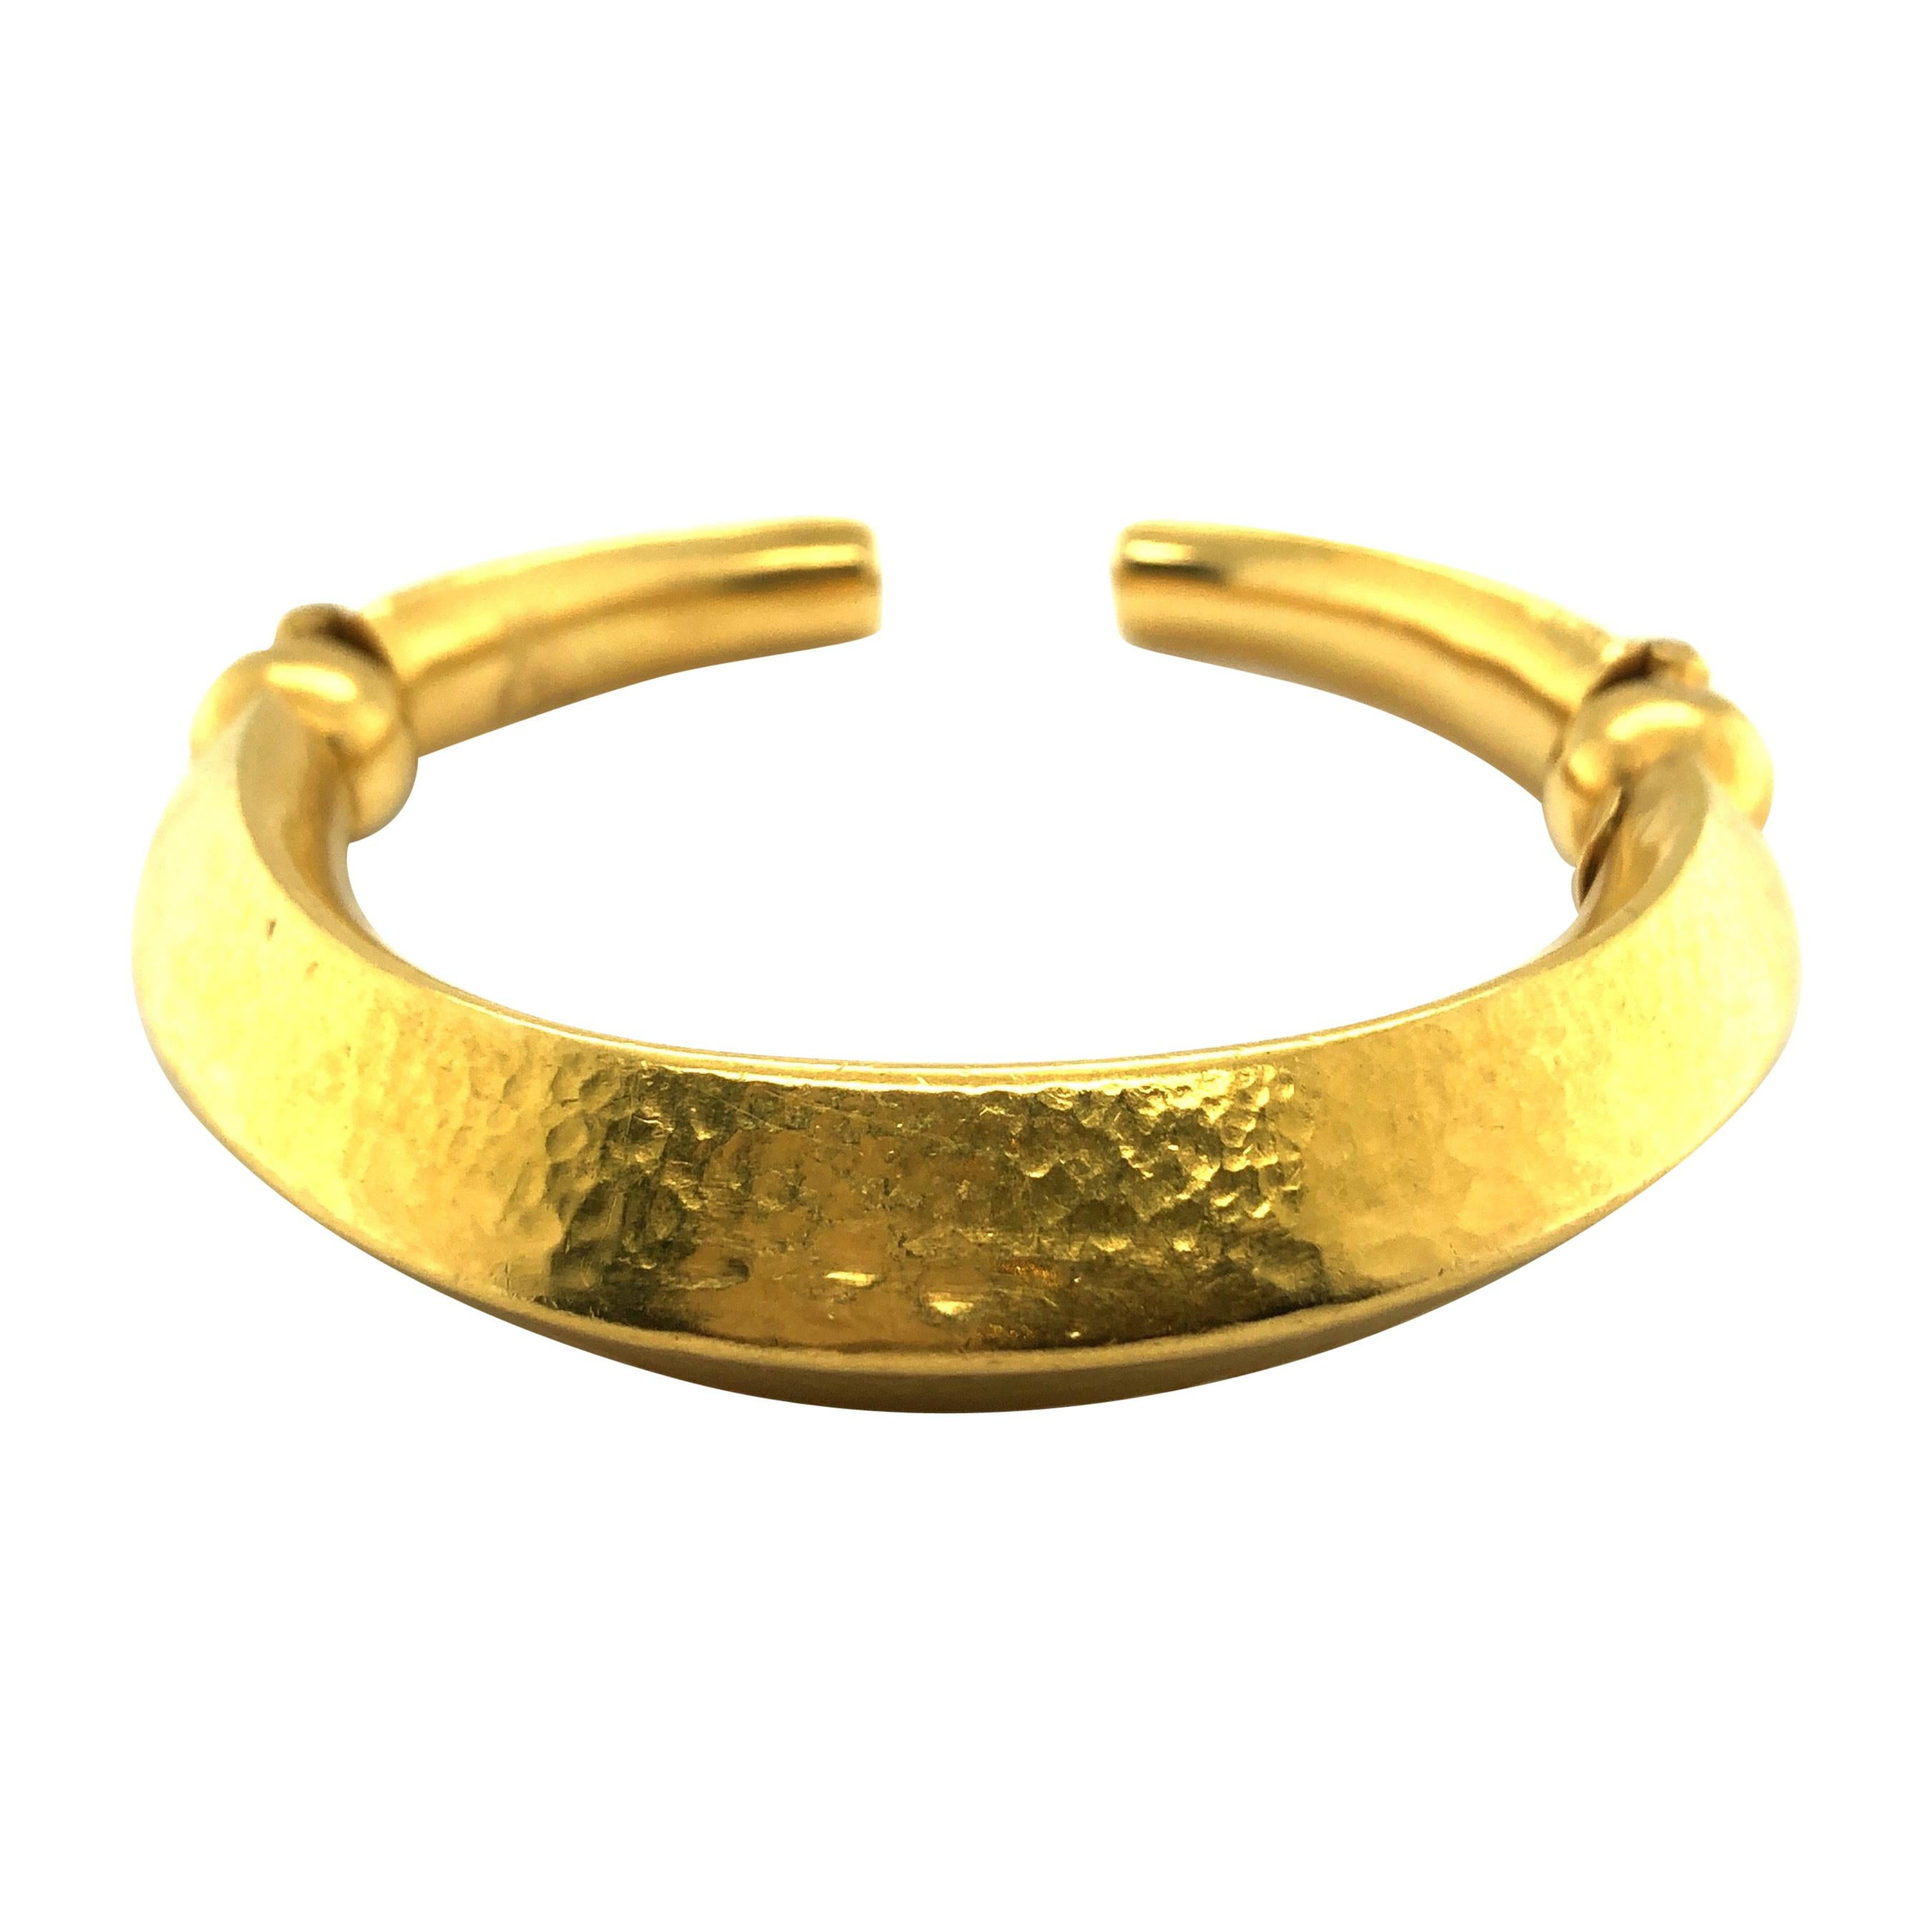 18 Karat Yellow Gold Cuff Bracelet by Lalaounis